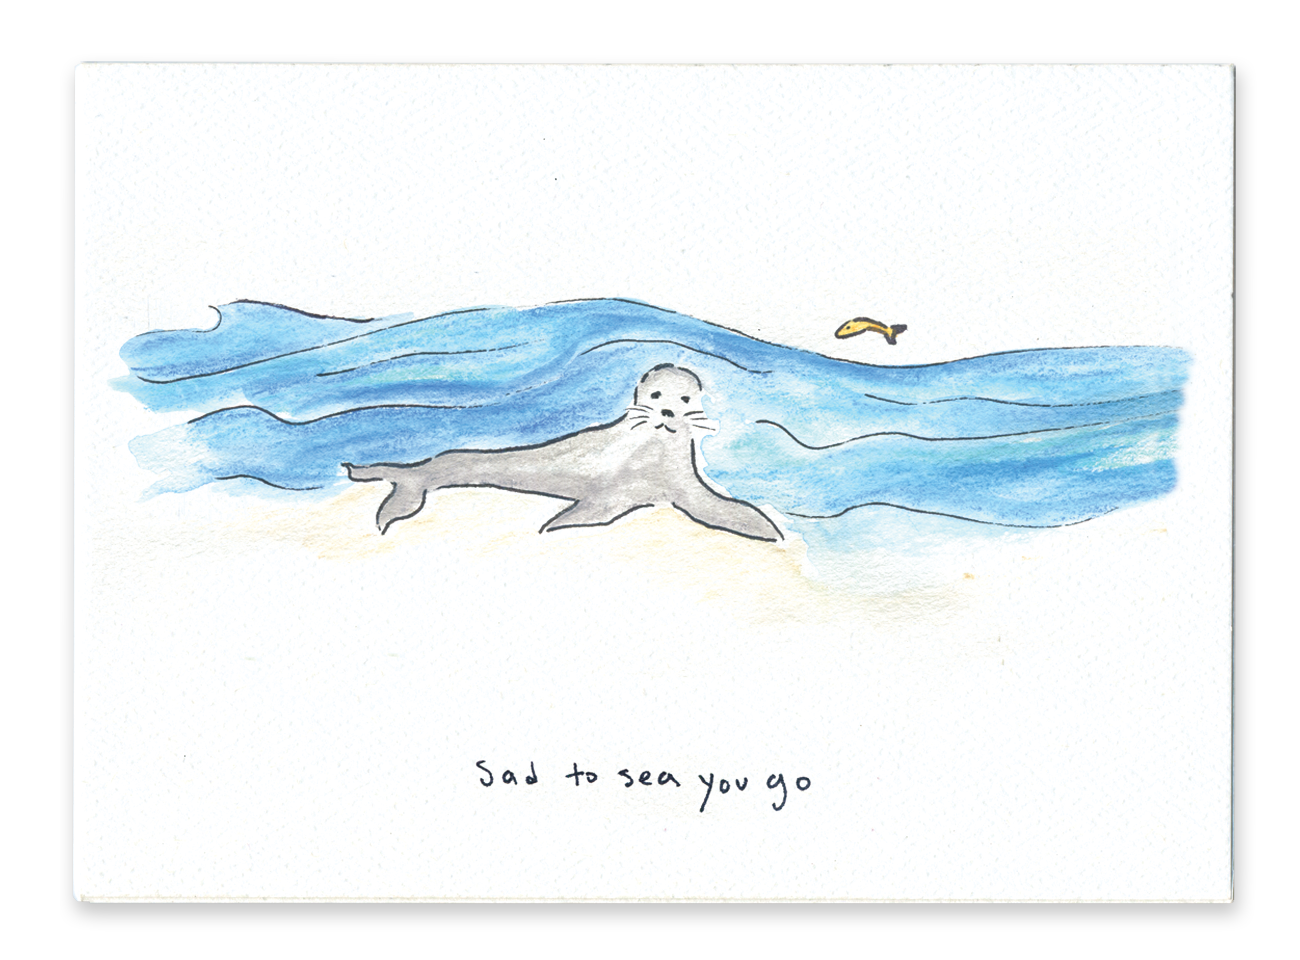 Sad To Sea You Go